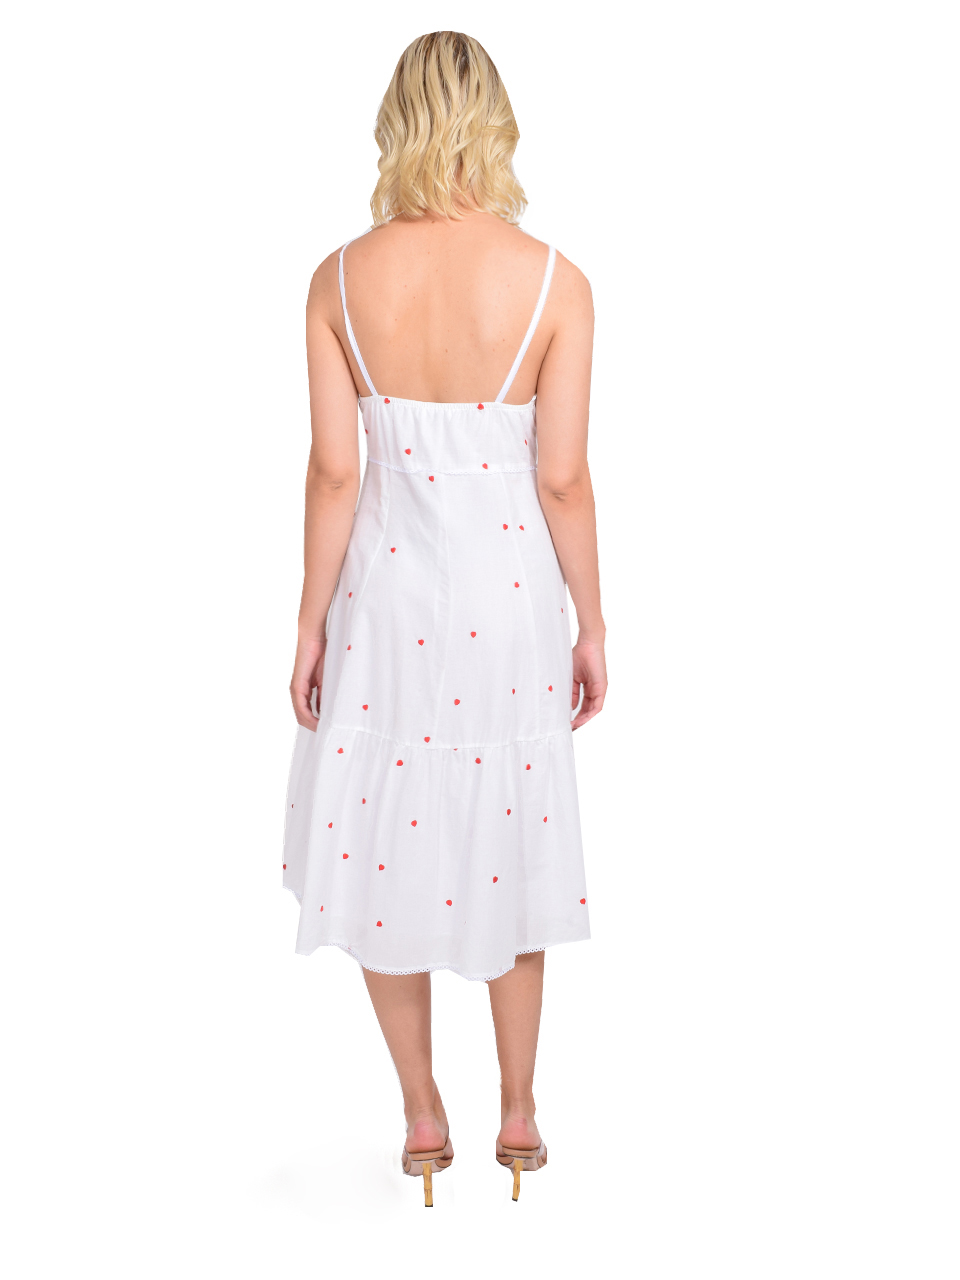 Ottod'Ame Embroidered Dress with Drawstring Back View